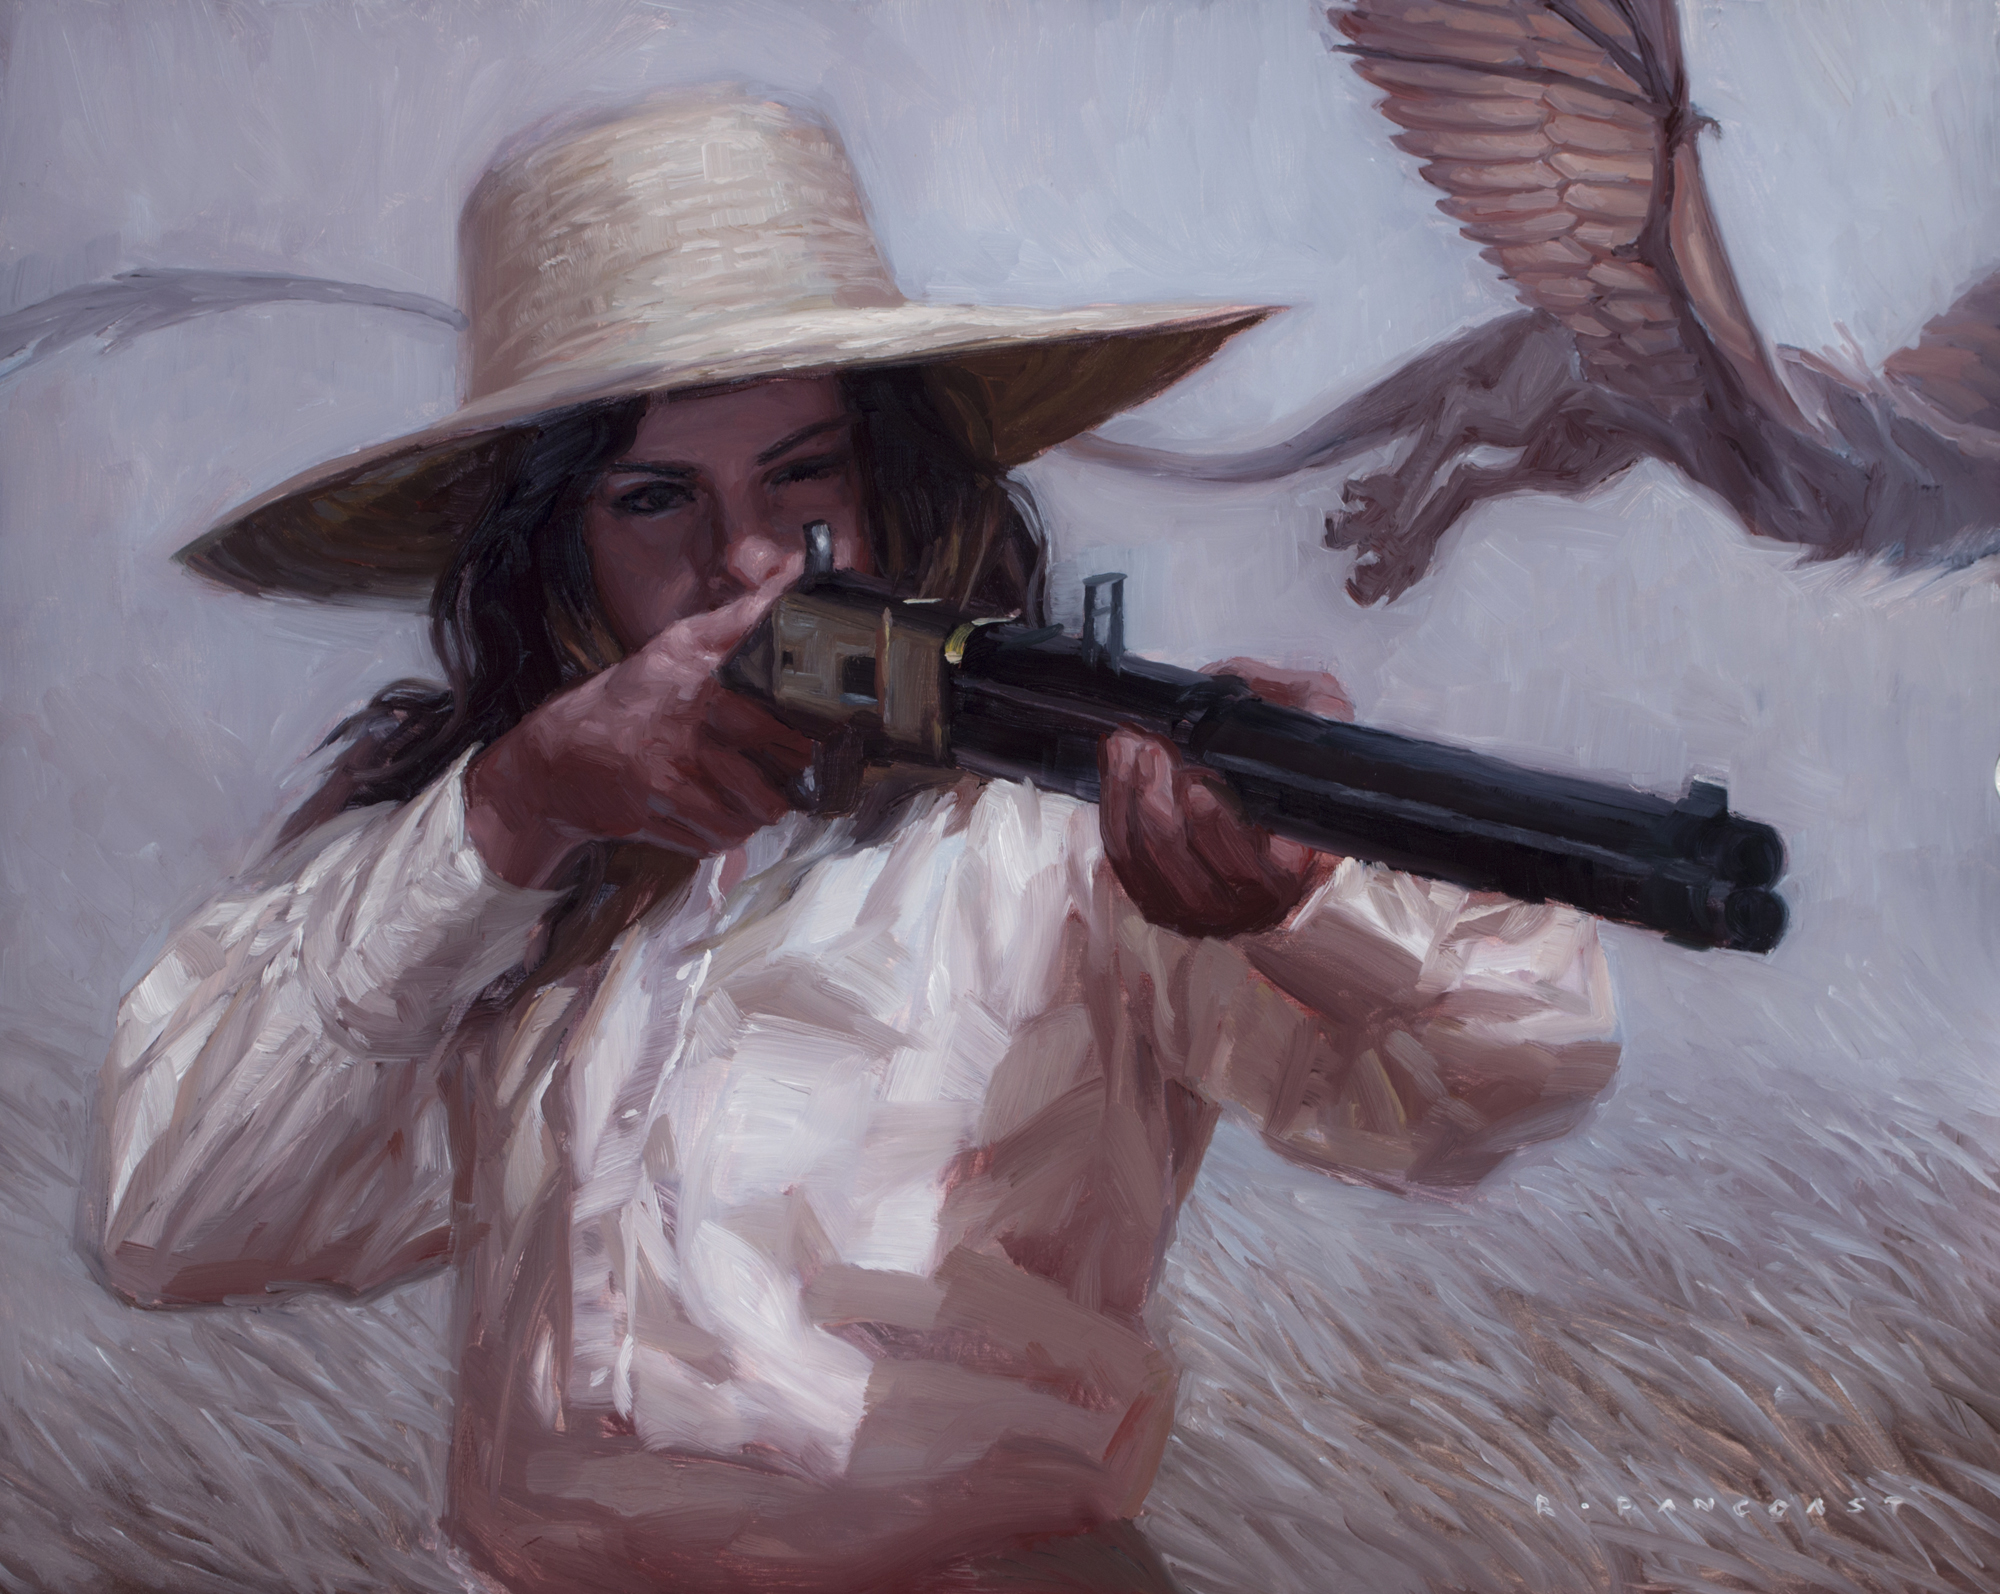 painting by Ryan Pancoast of a woman, a dragon, and a gun.